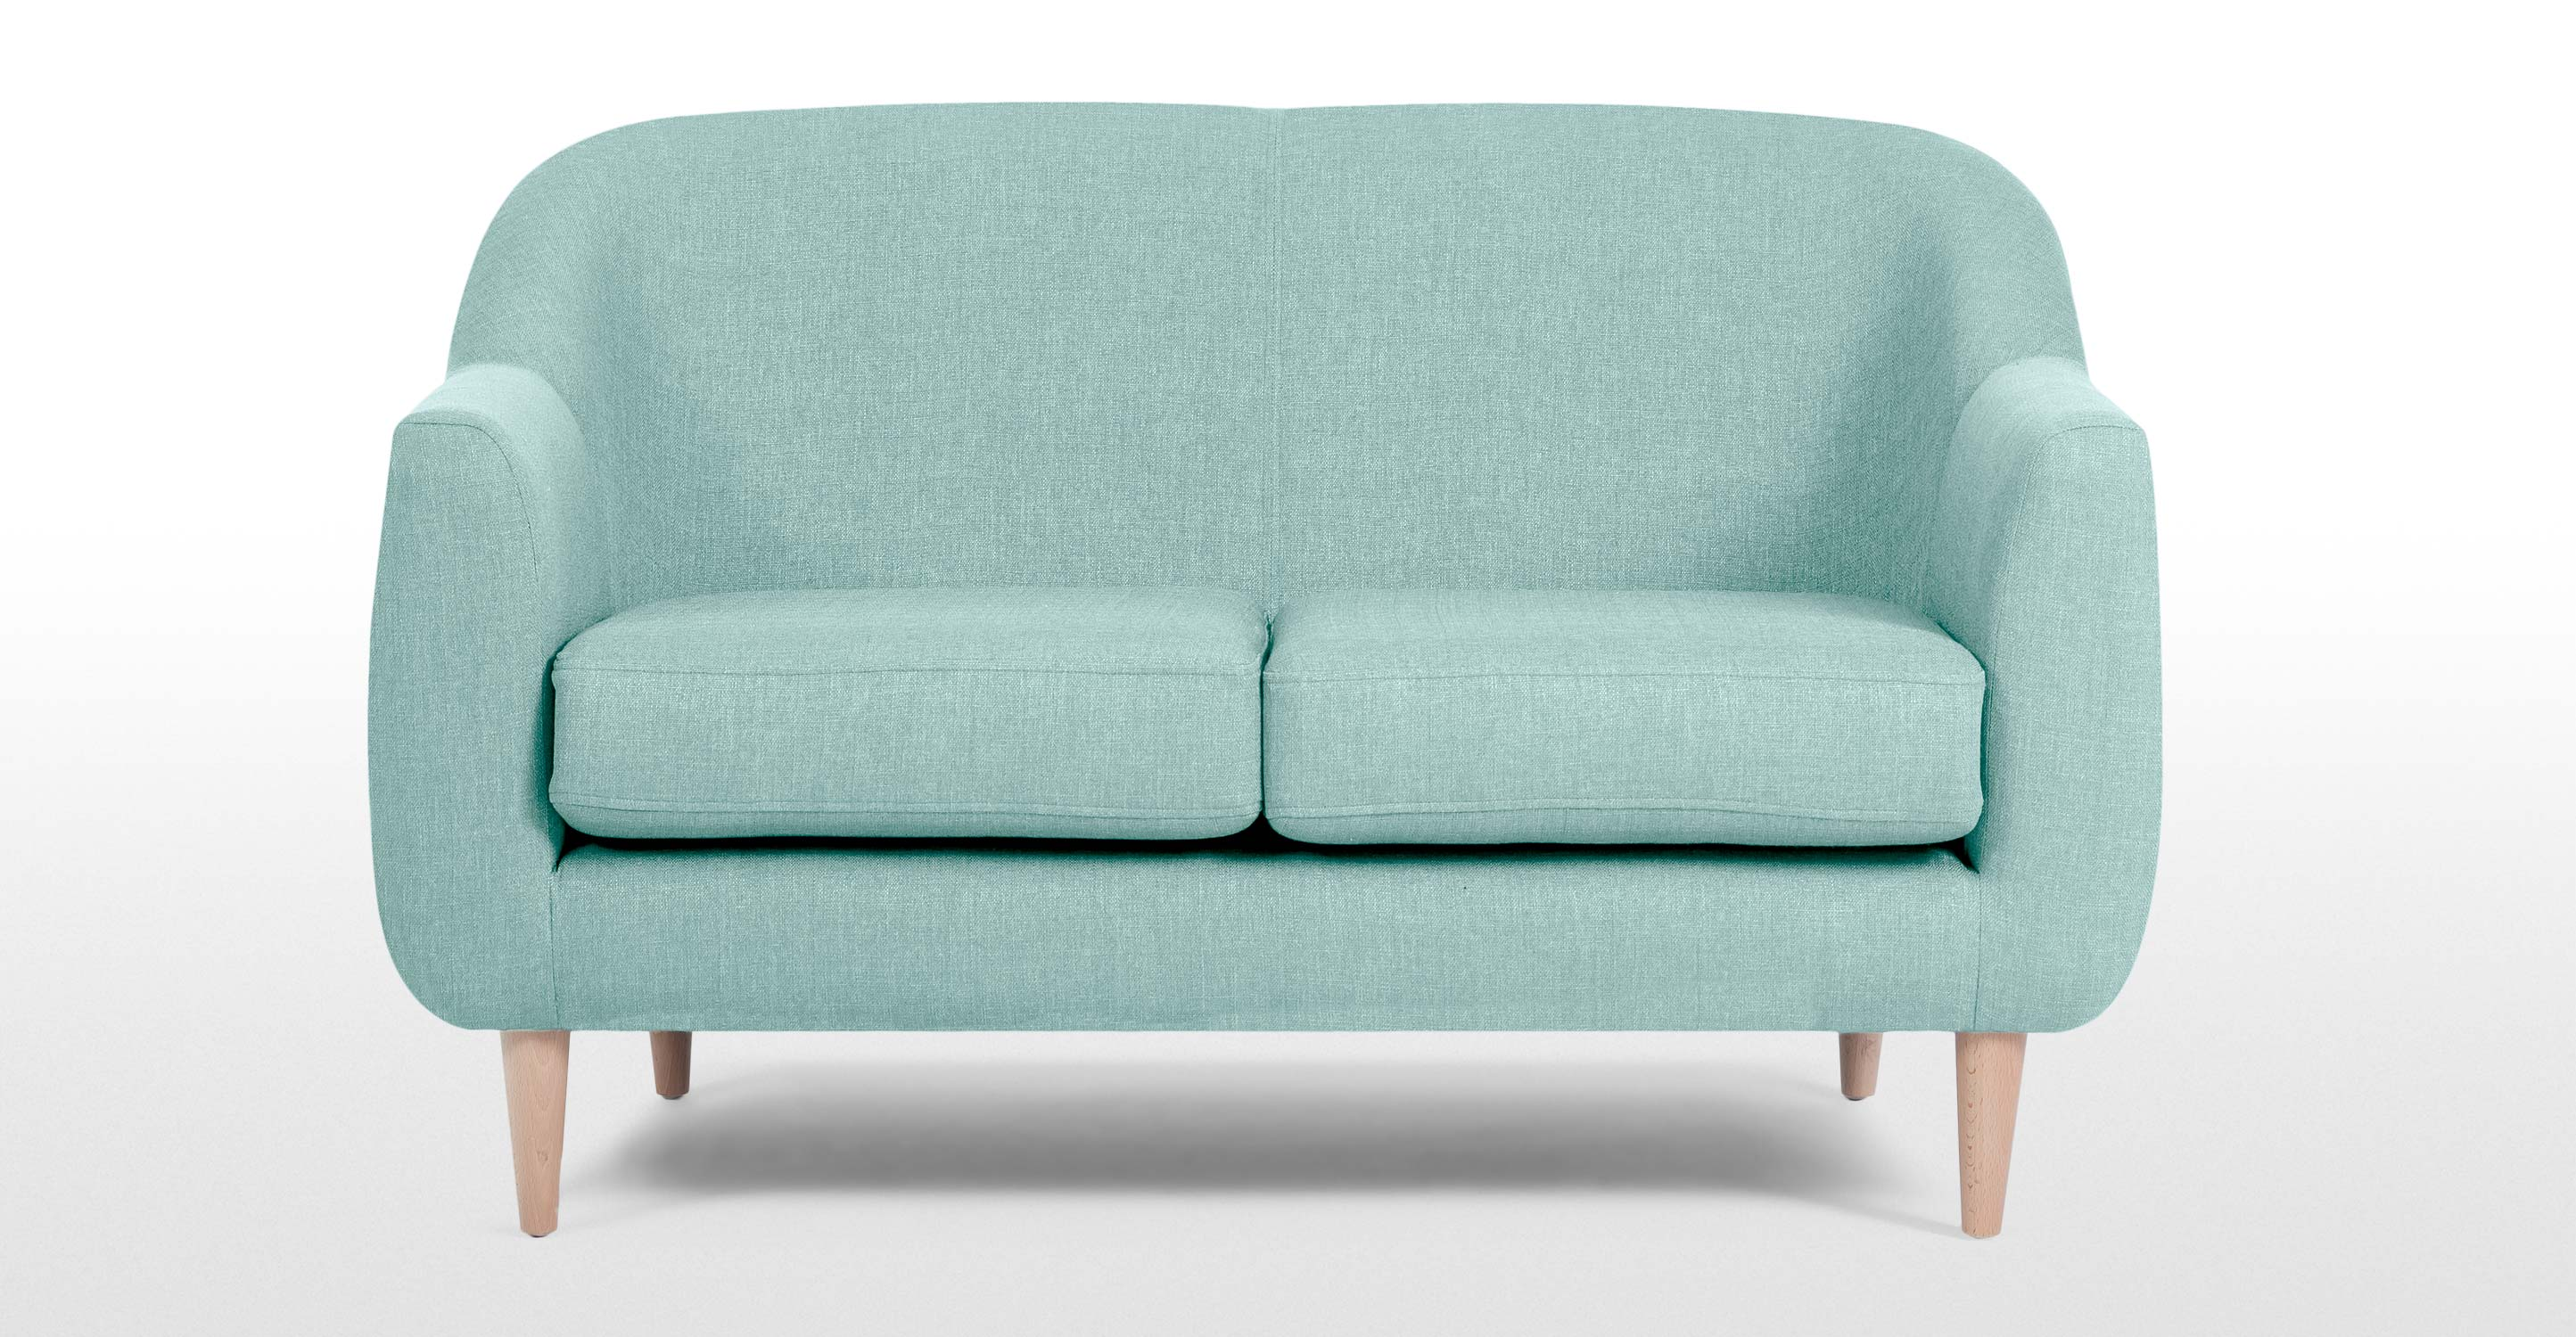 Tubby 2 Seater Sofa In Turquoise Blue